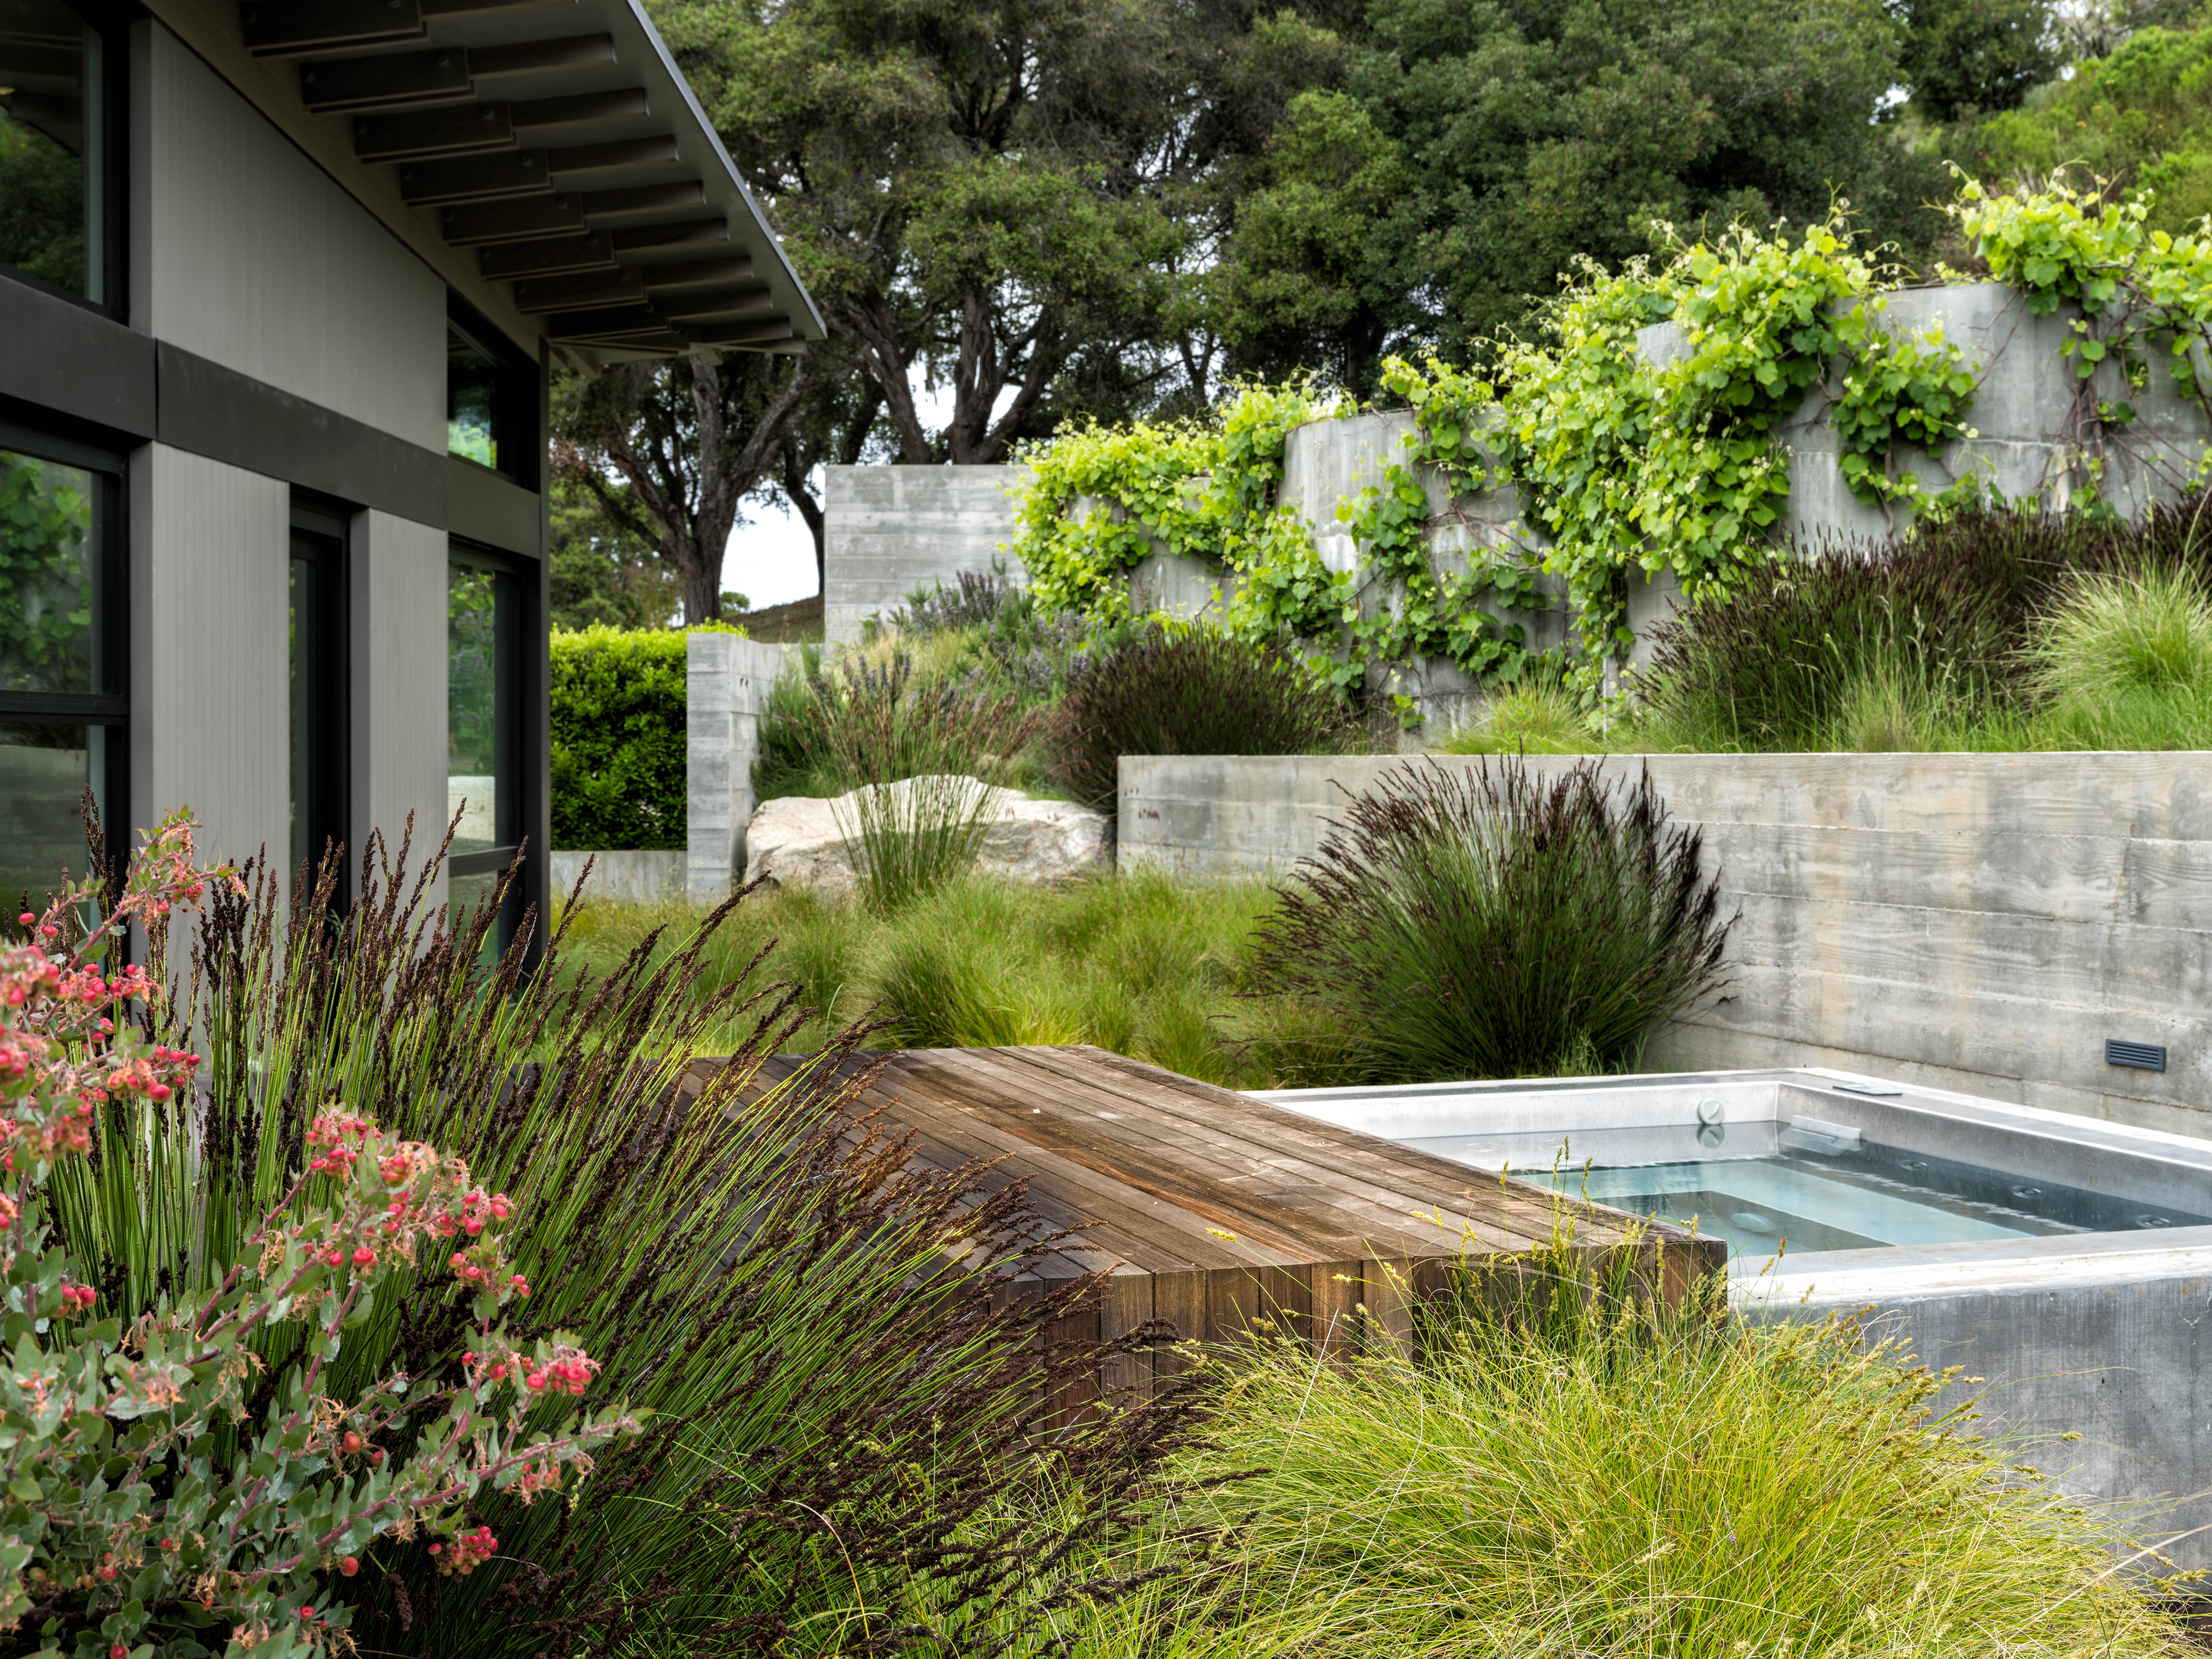 A custom, cedar-clad rolling cover and a spa fromBradford Products are sheltered by a poured-concrete spa shell and concrete privacy walls on which grapevines (Vitis californica &#8